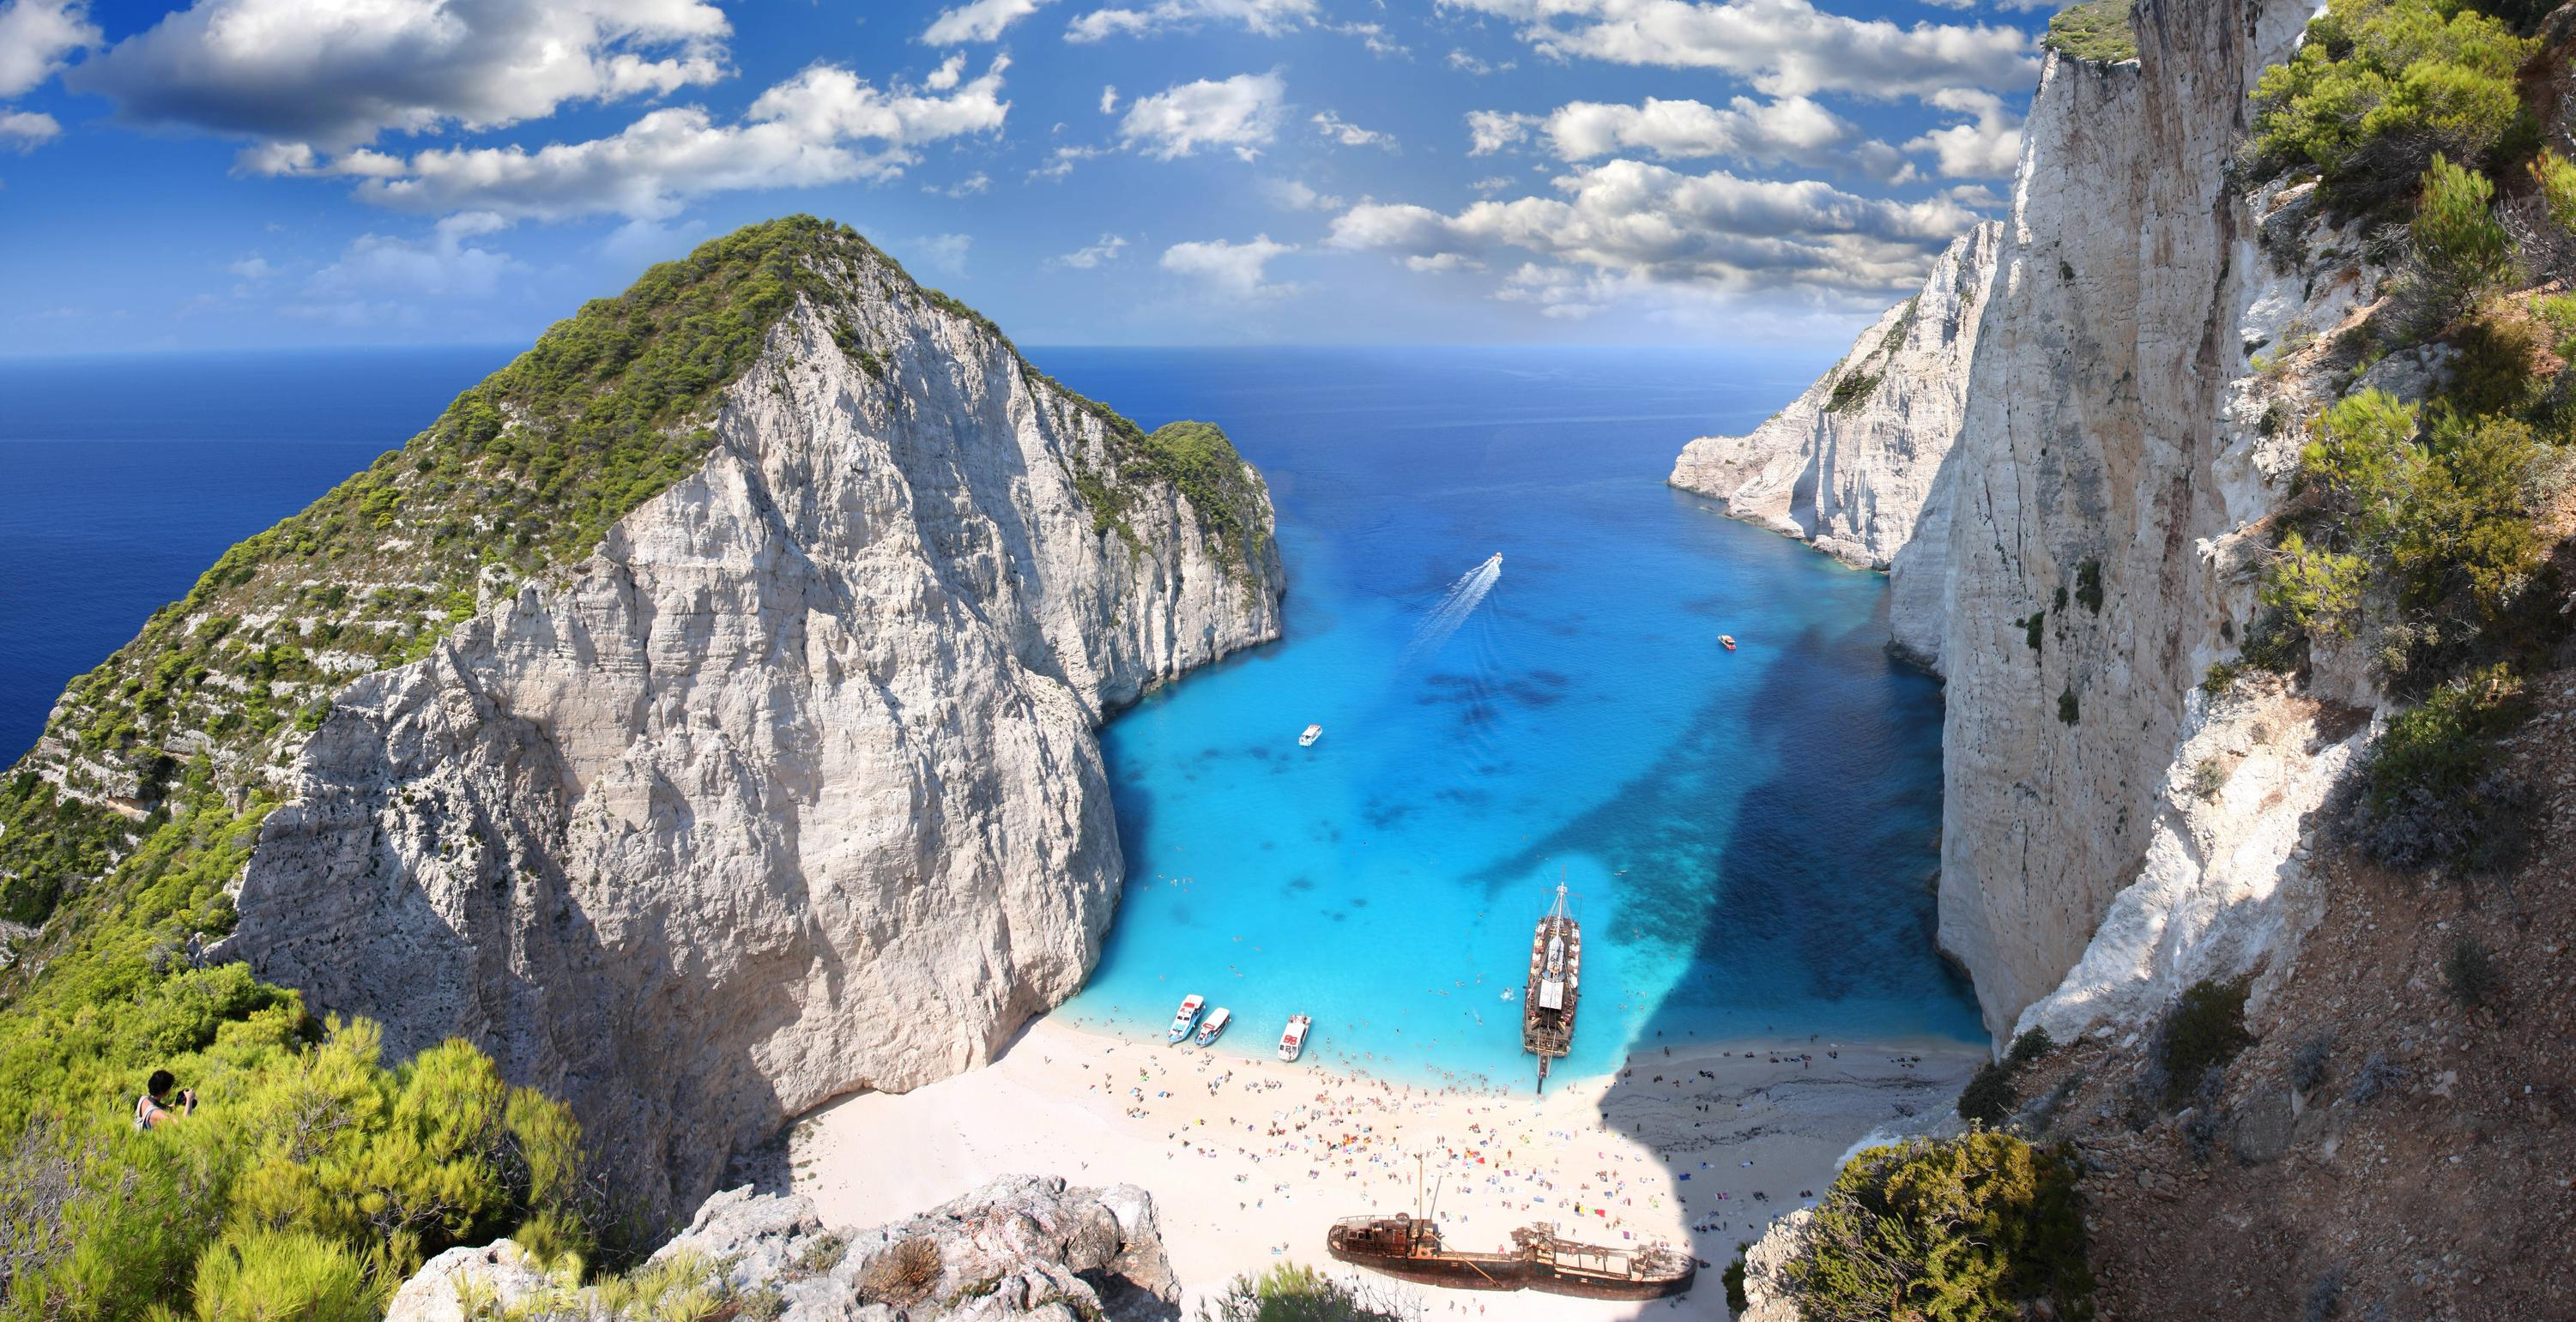 Bron: https://www.reddit.com/r/EarthPorn/comments/1ypgne/navagio_beach_zakynthos_ionian_islands_greece/